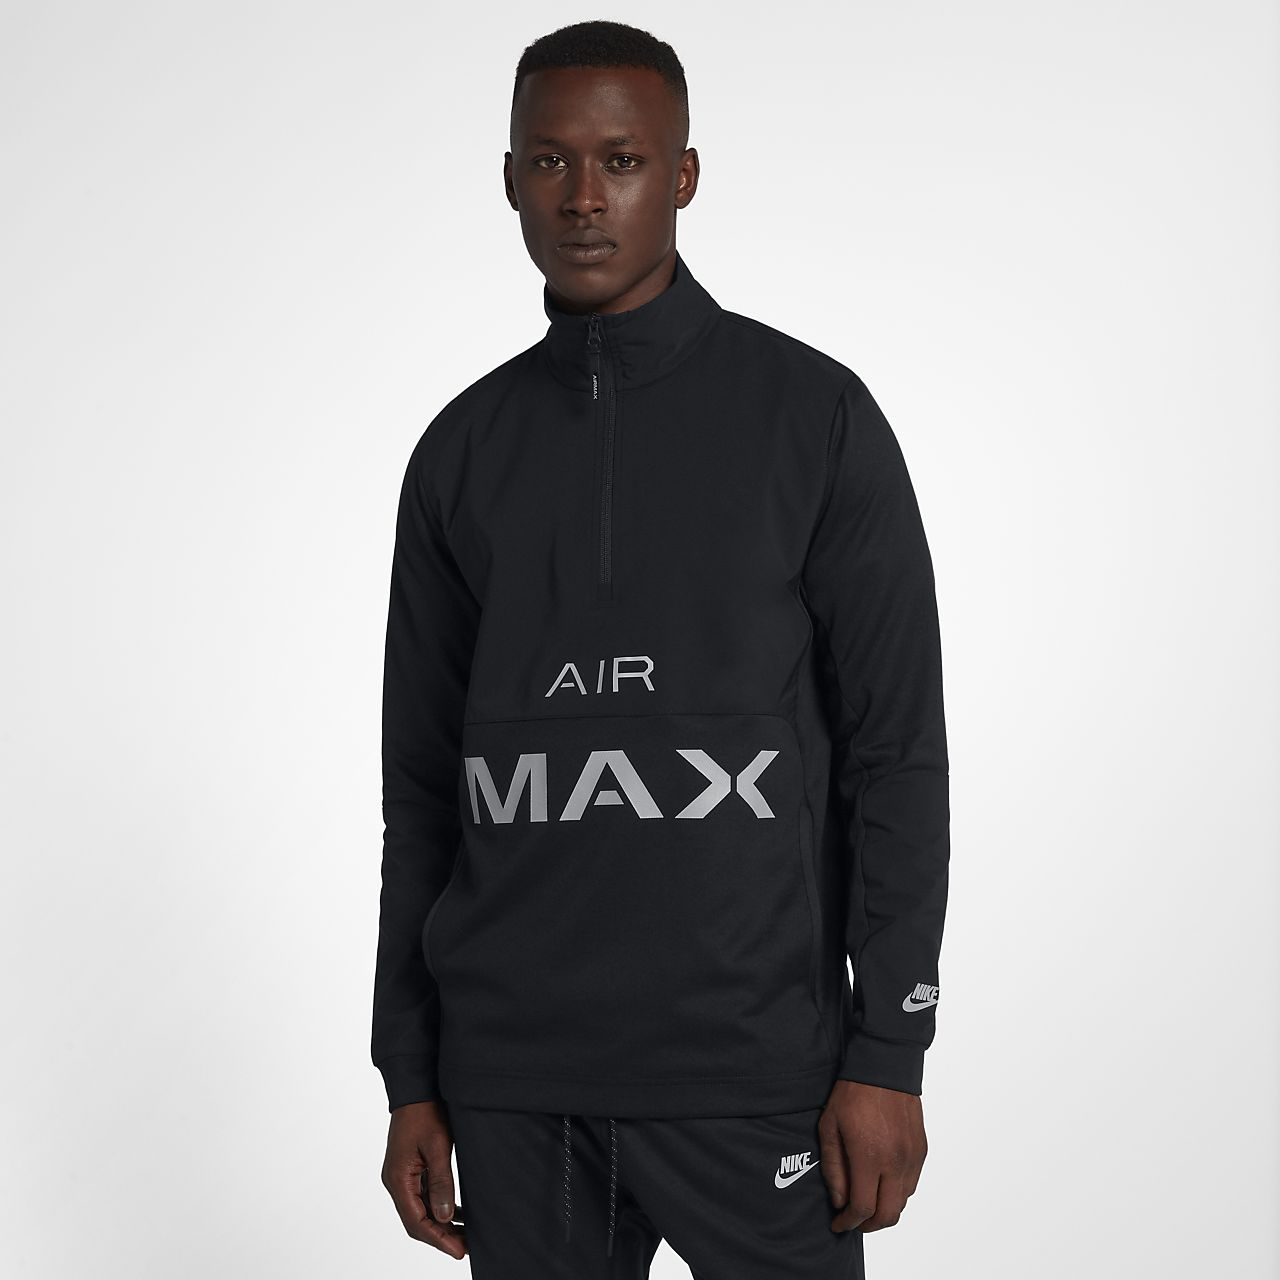 great look performance sportswear shop Veste Nike Sportswear Air Max pour Homme